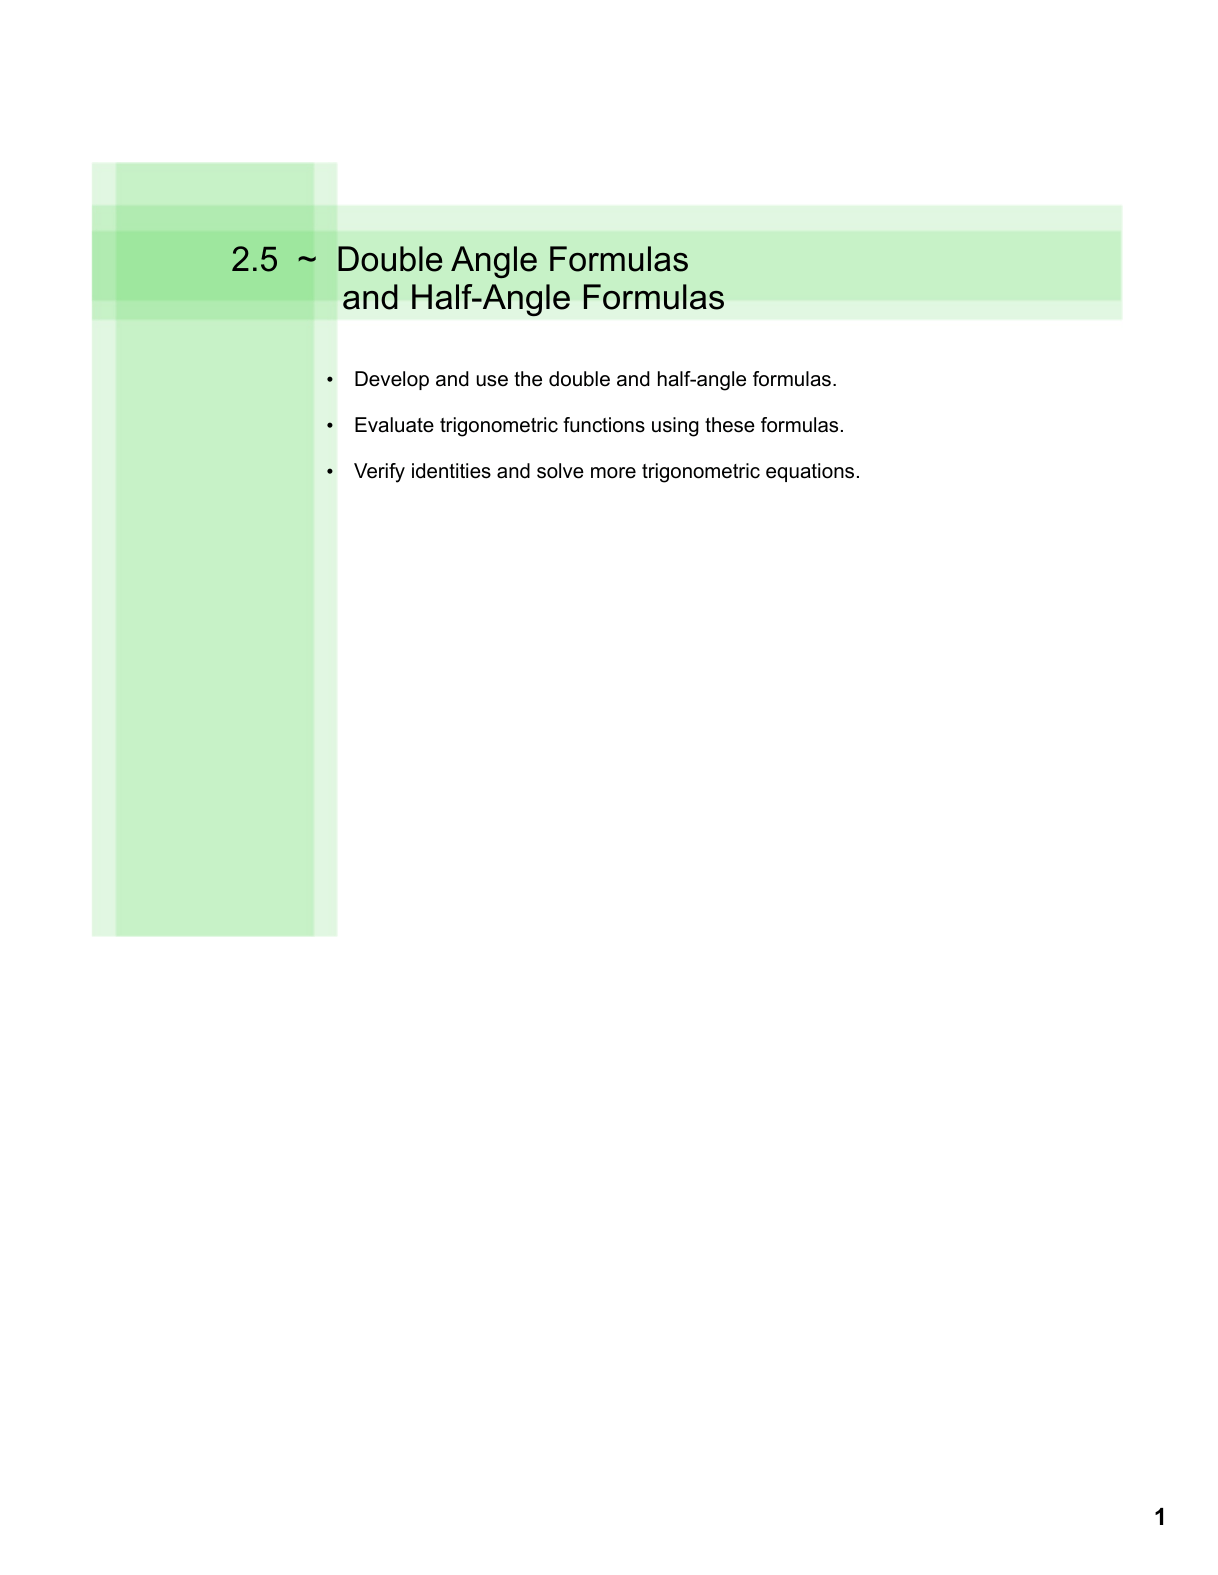 Solving Trig Equations Using Double Angle Formulas